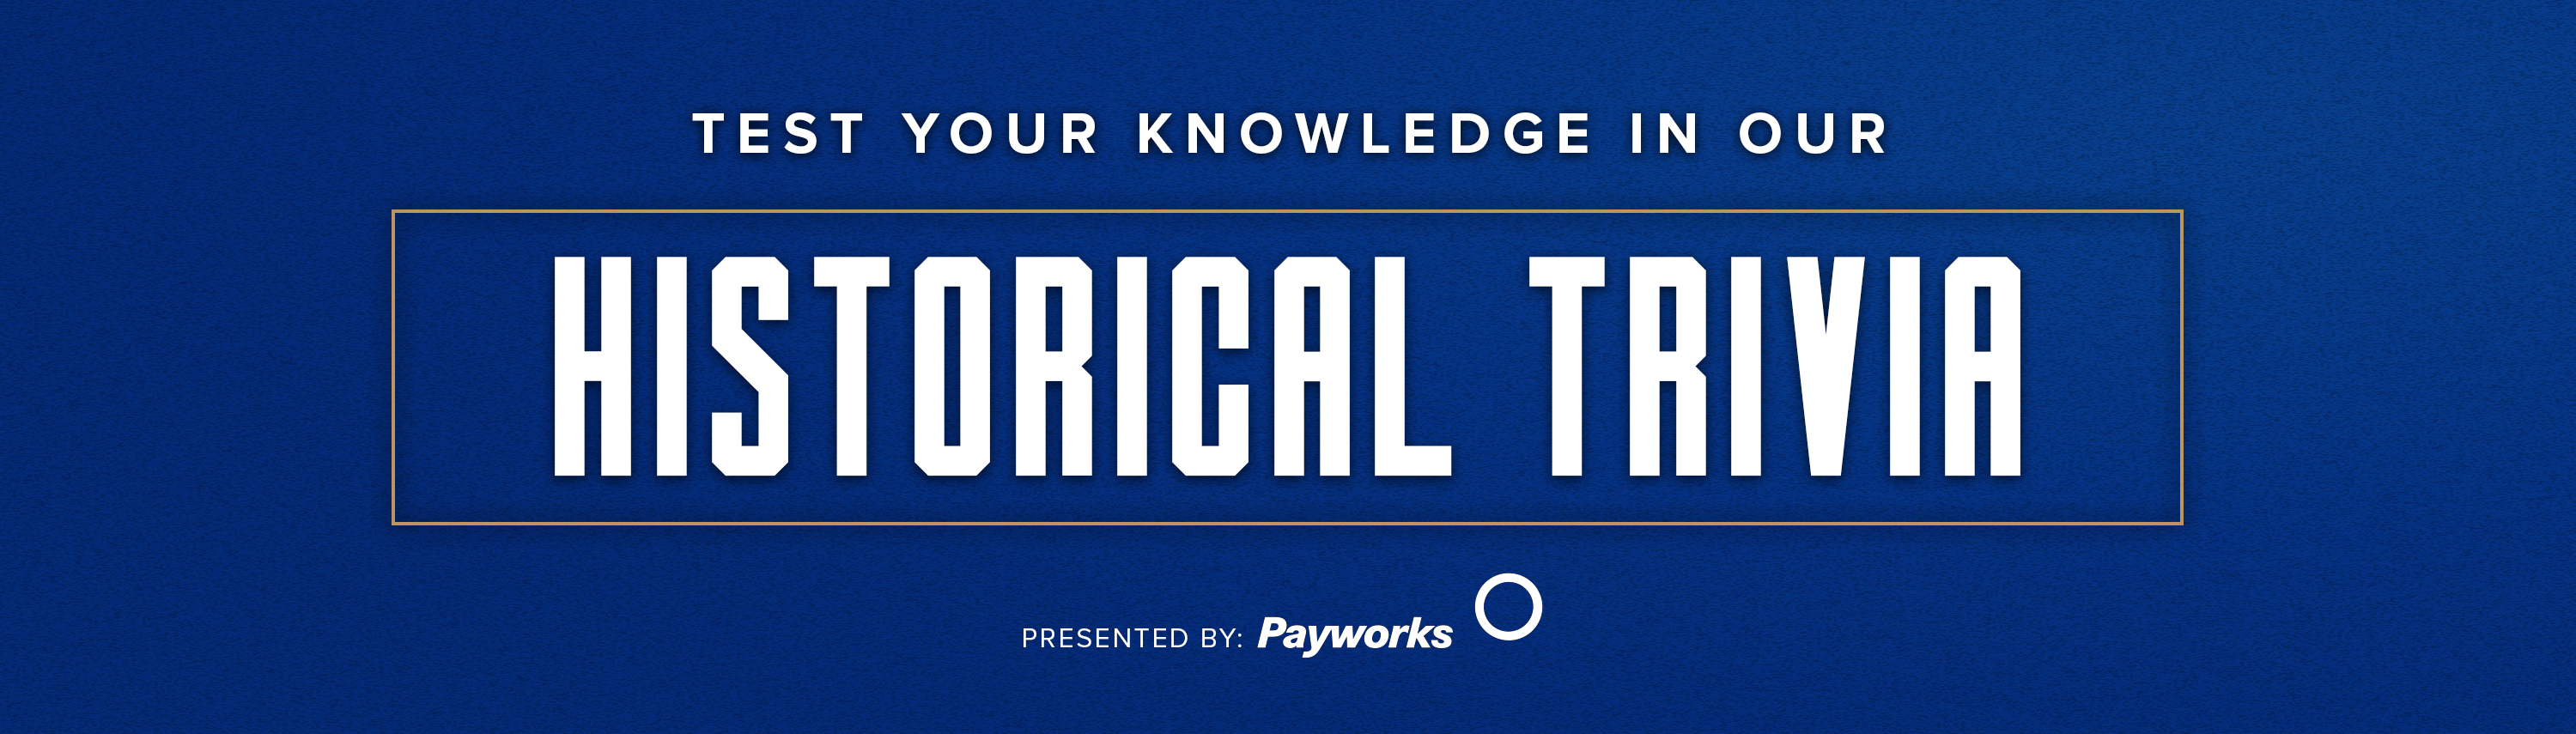 Historical Trivia presented by Payworks